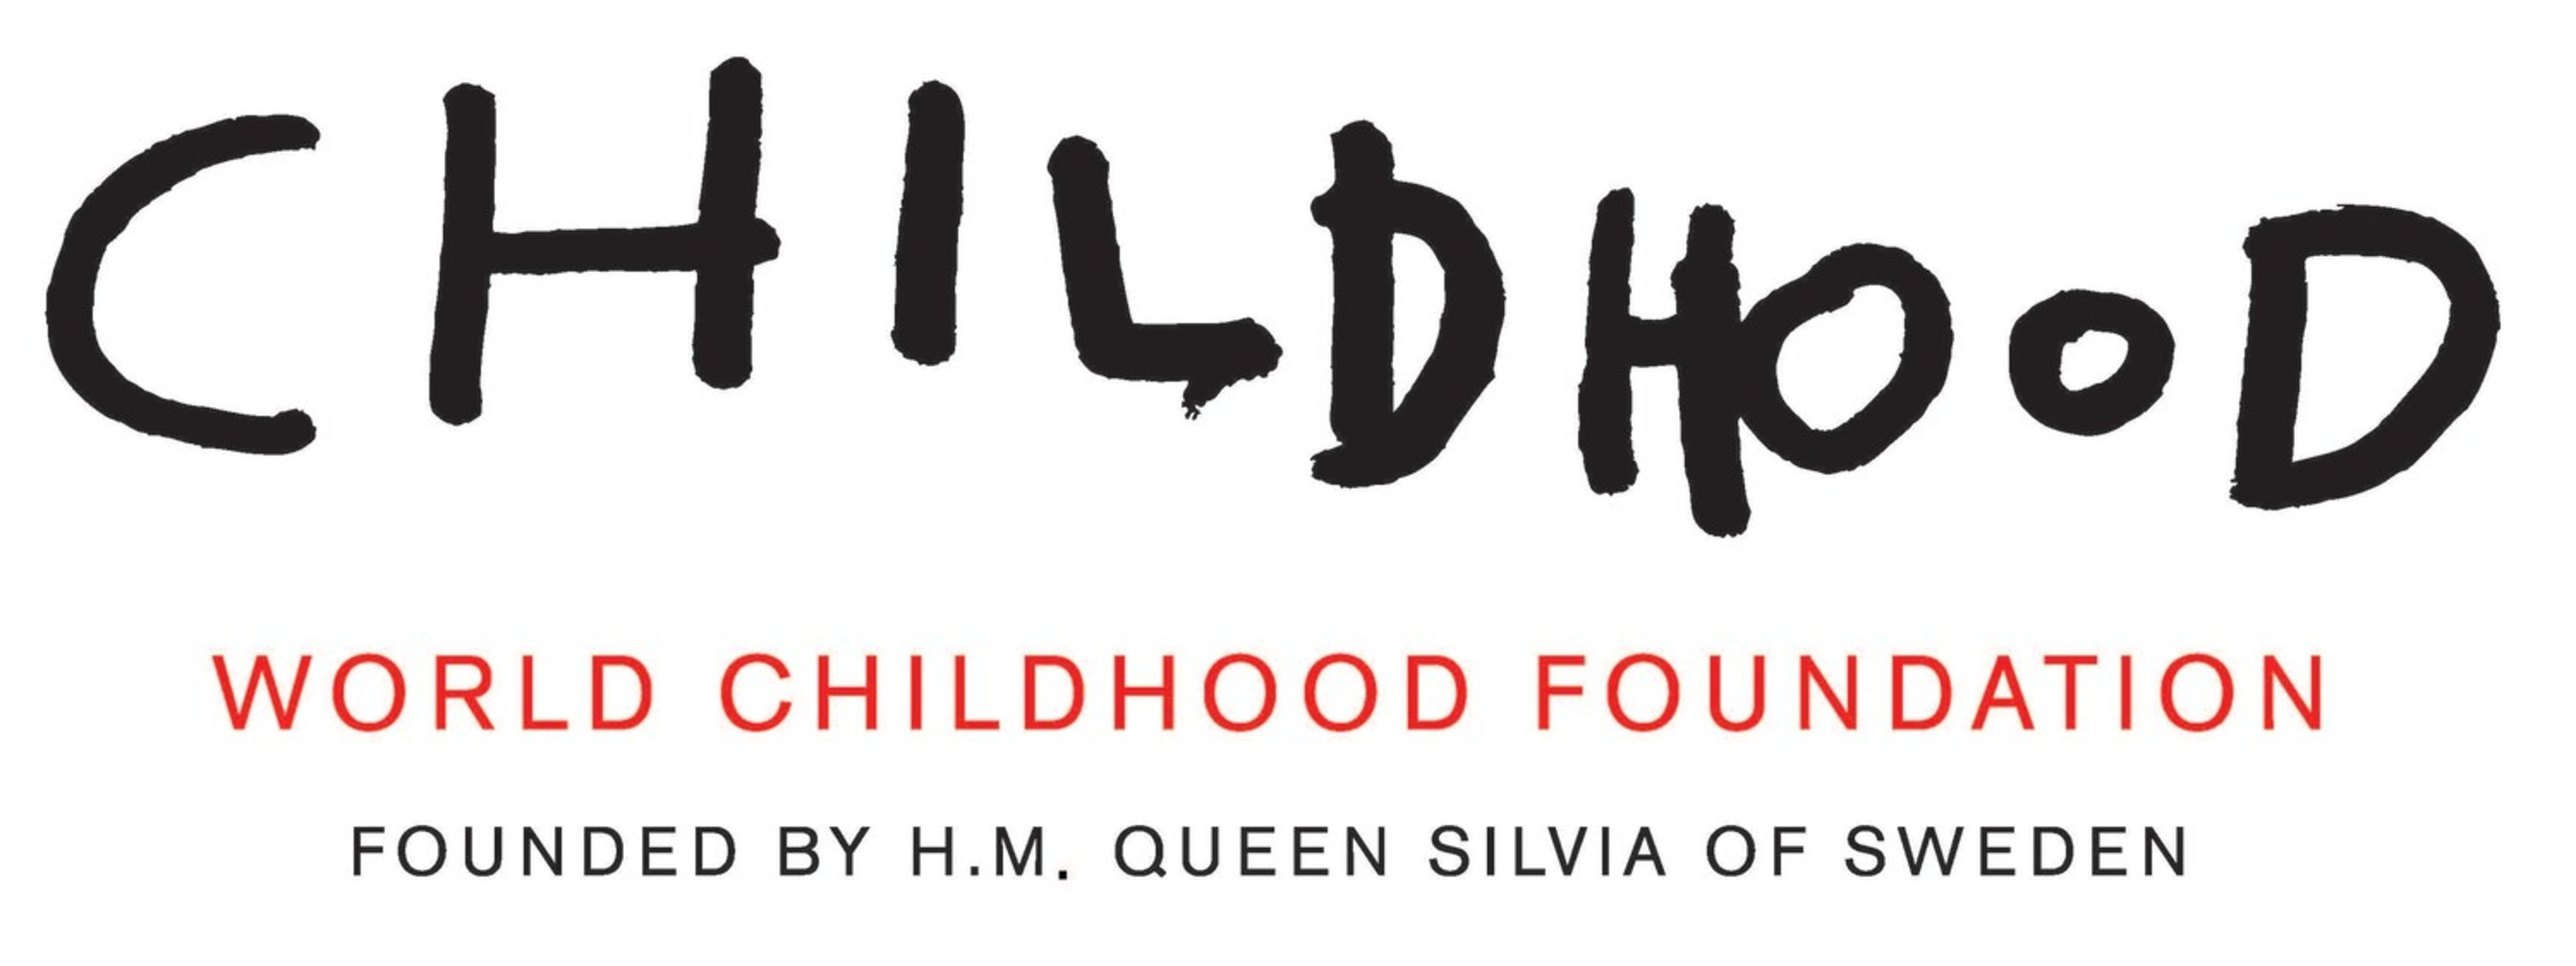 World Childhood Foundation USA Logo